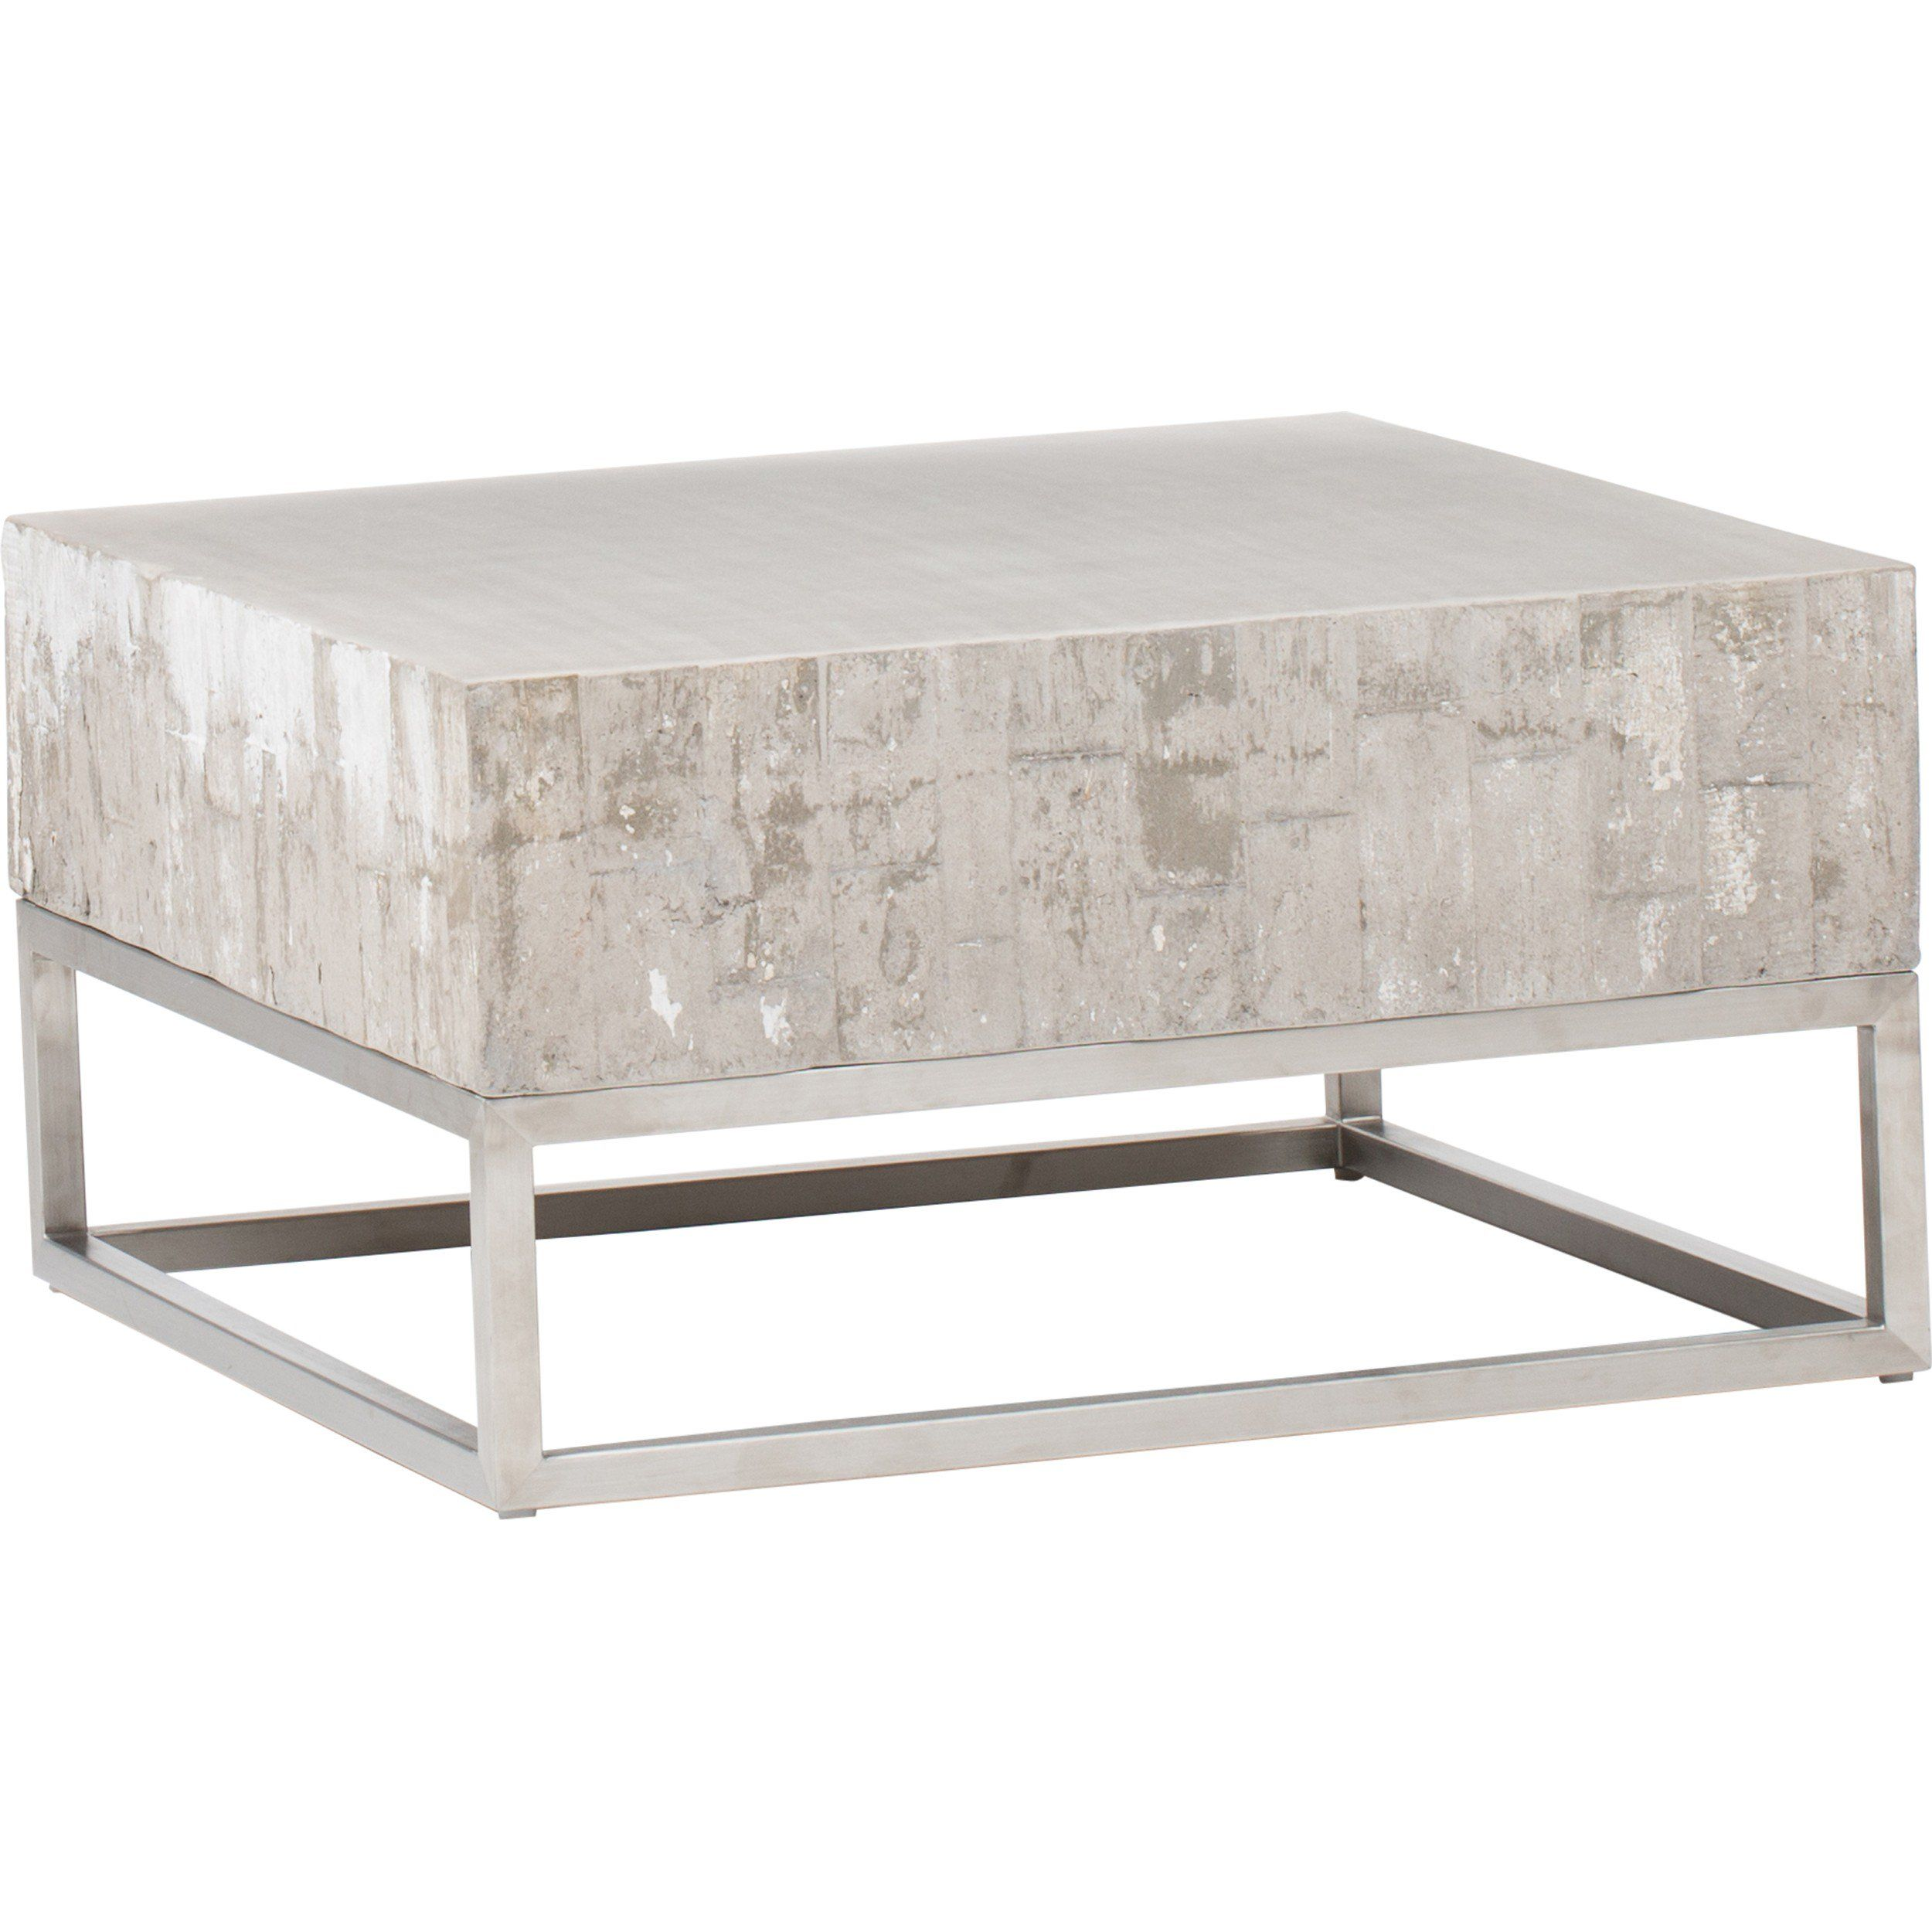 Concrete And Chrome Coffee Table HERITAGE GROVES DRIVE - Concrete and chrome coffee table